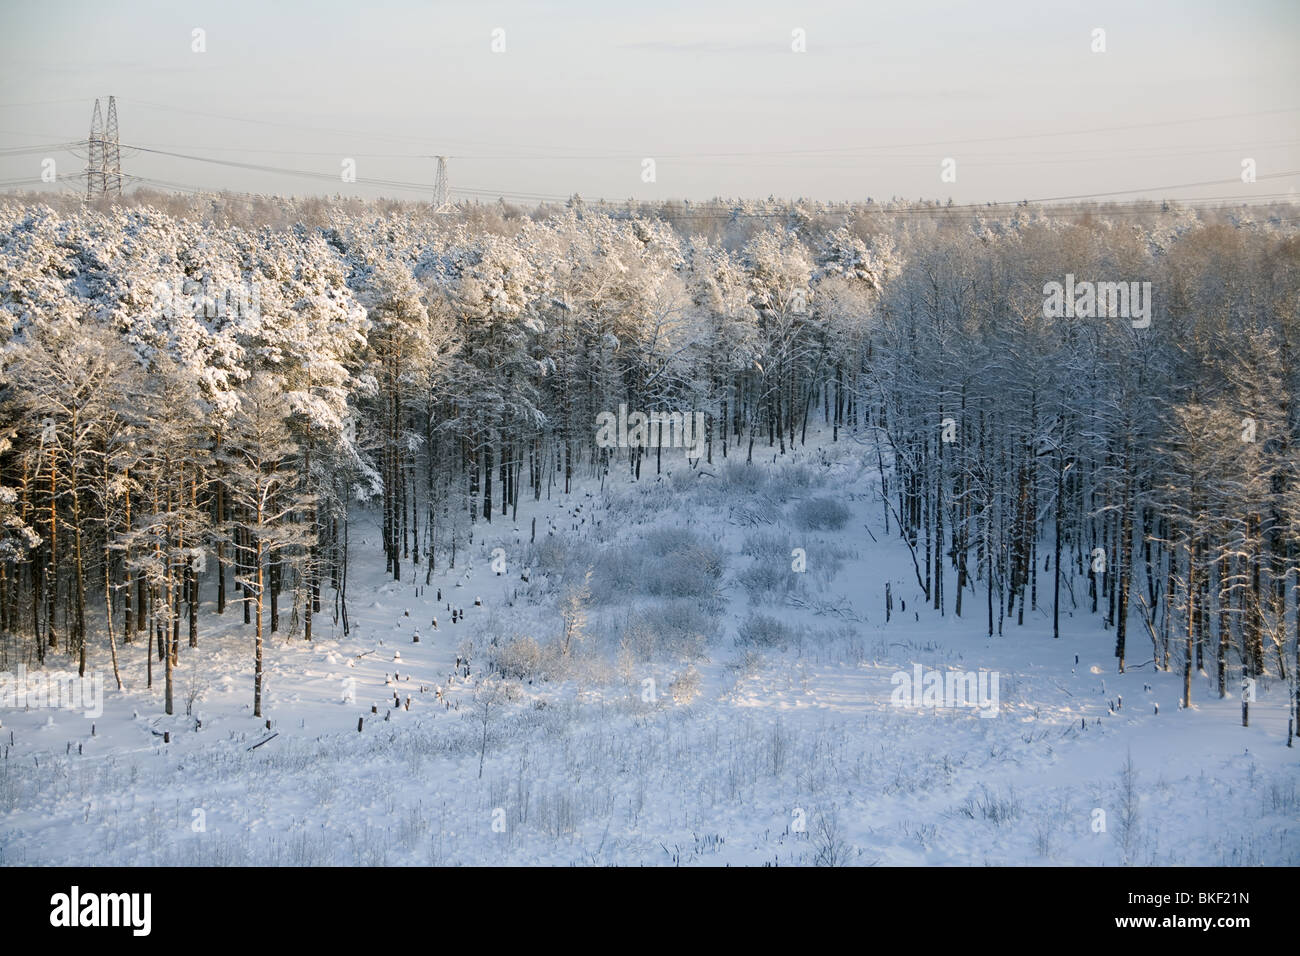 Winter landscape. View from balcony. - Stock Image